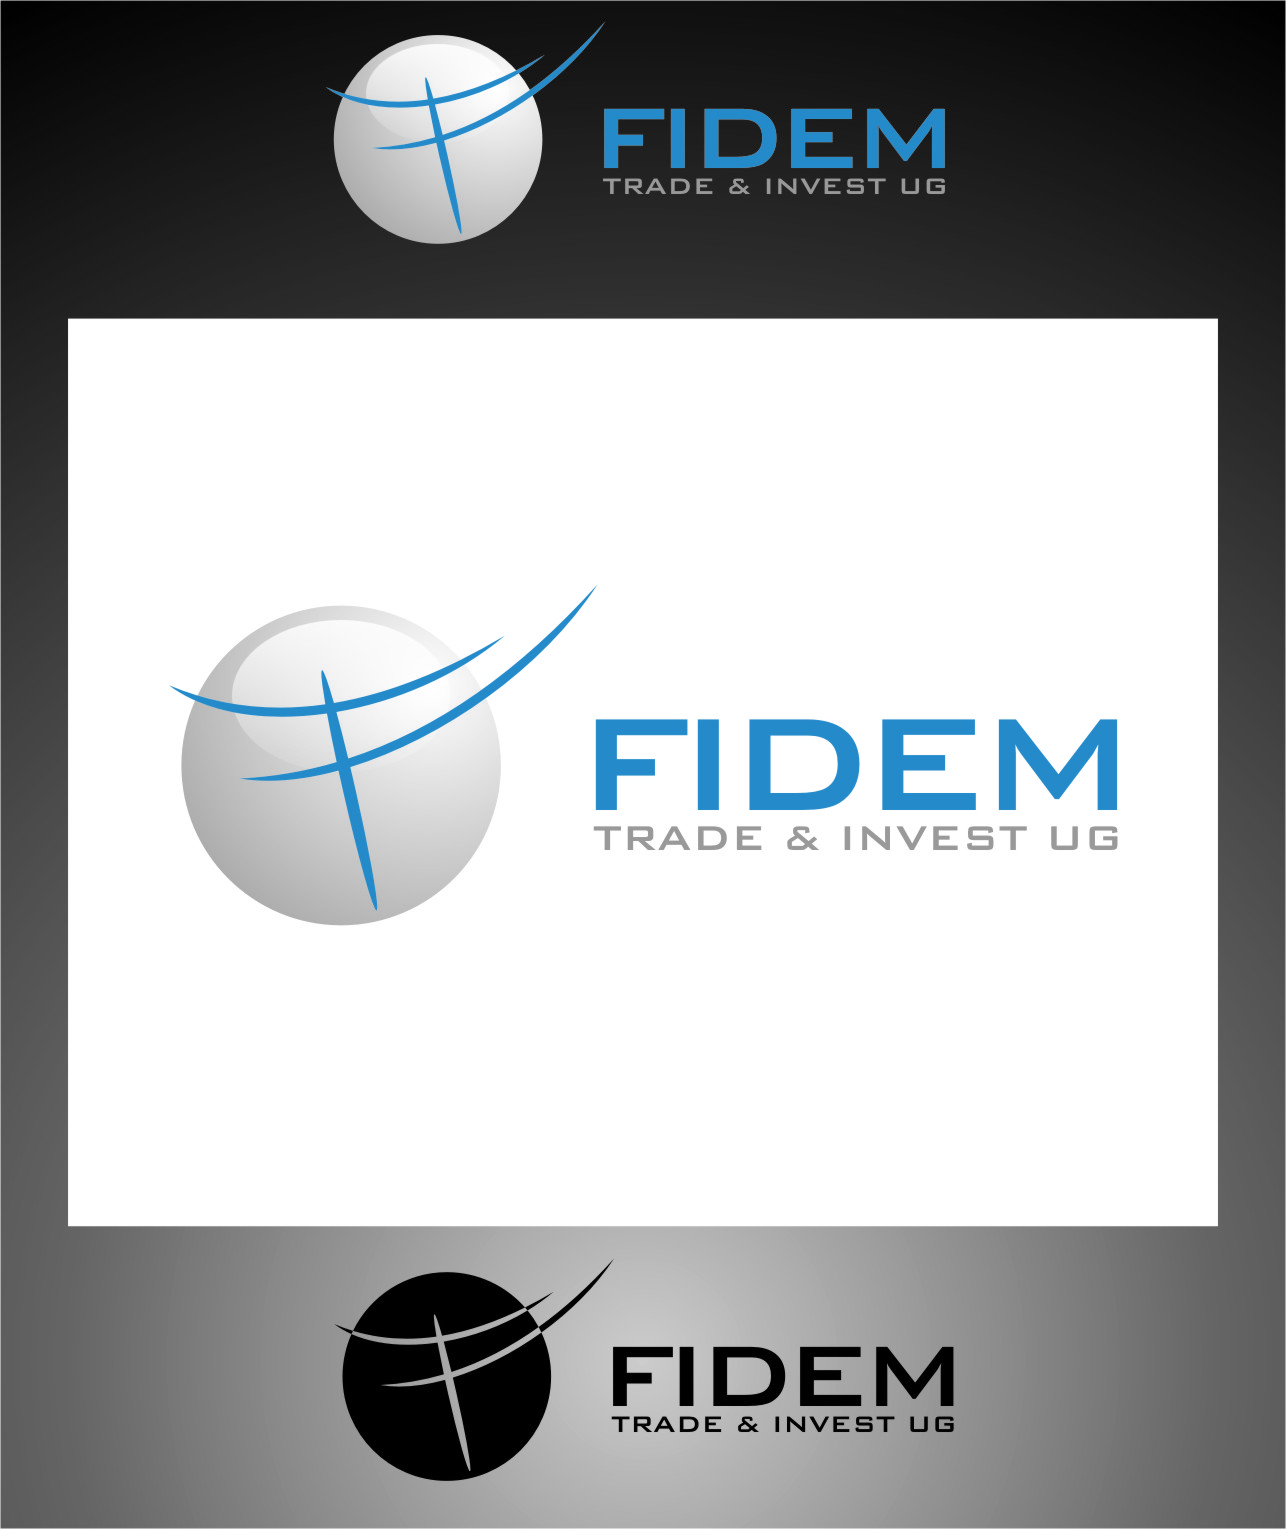 Logo Design by Ngepet_art - Entry No. 335 in the Logo Design Contest Professional Logo Design for FIDEM Trade & Invest UG.